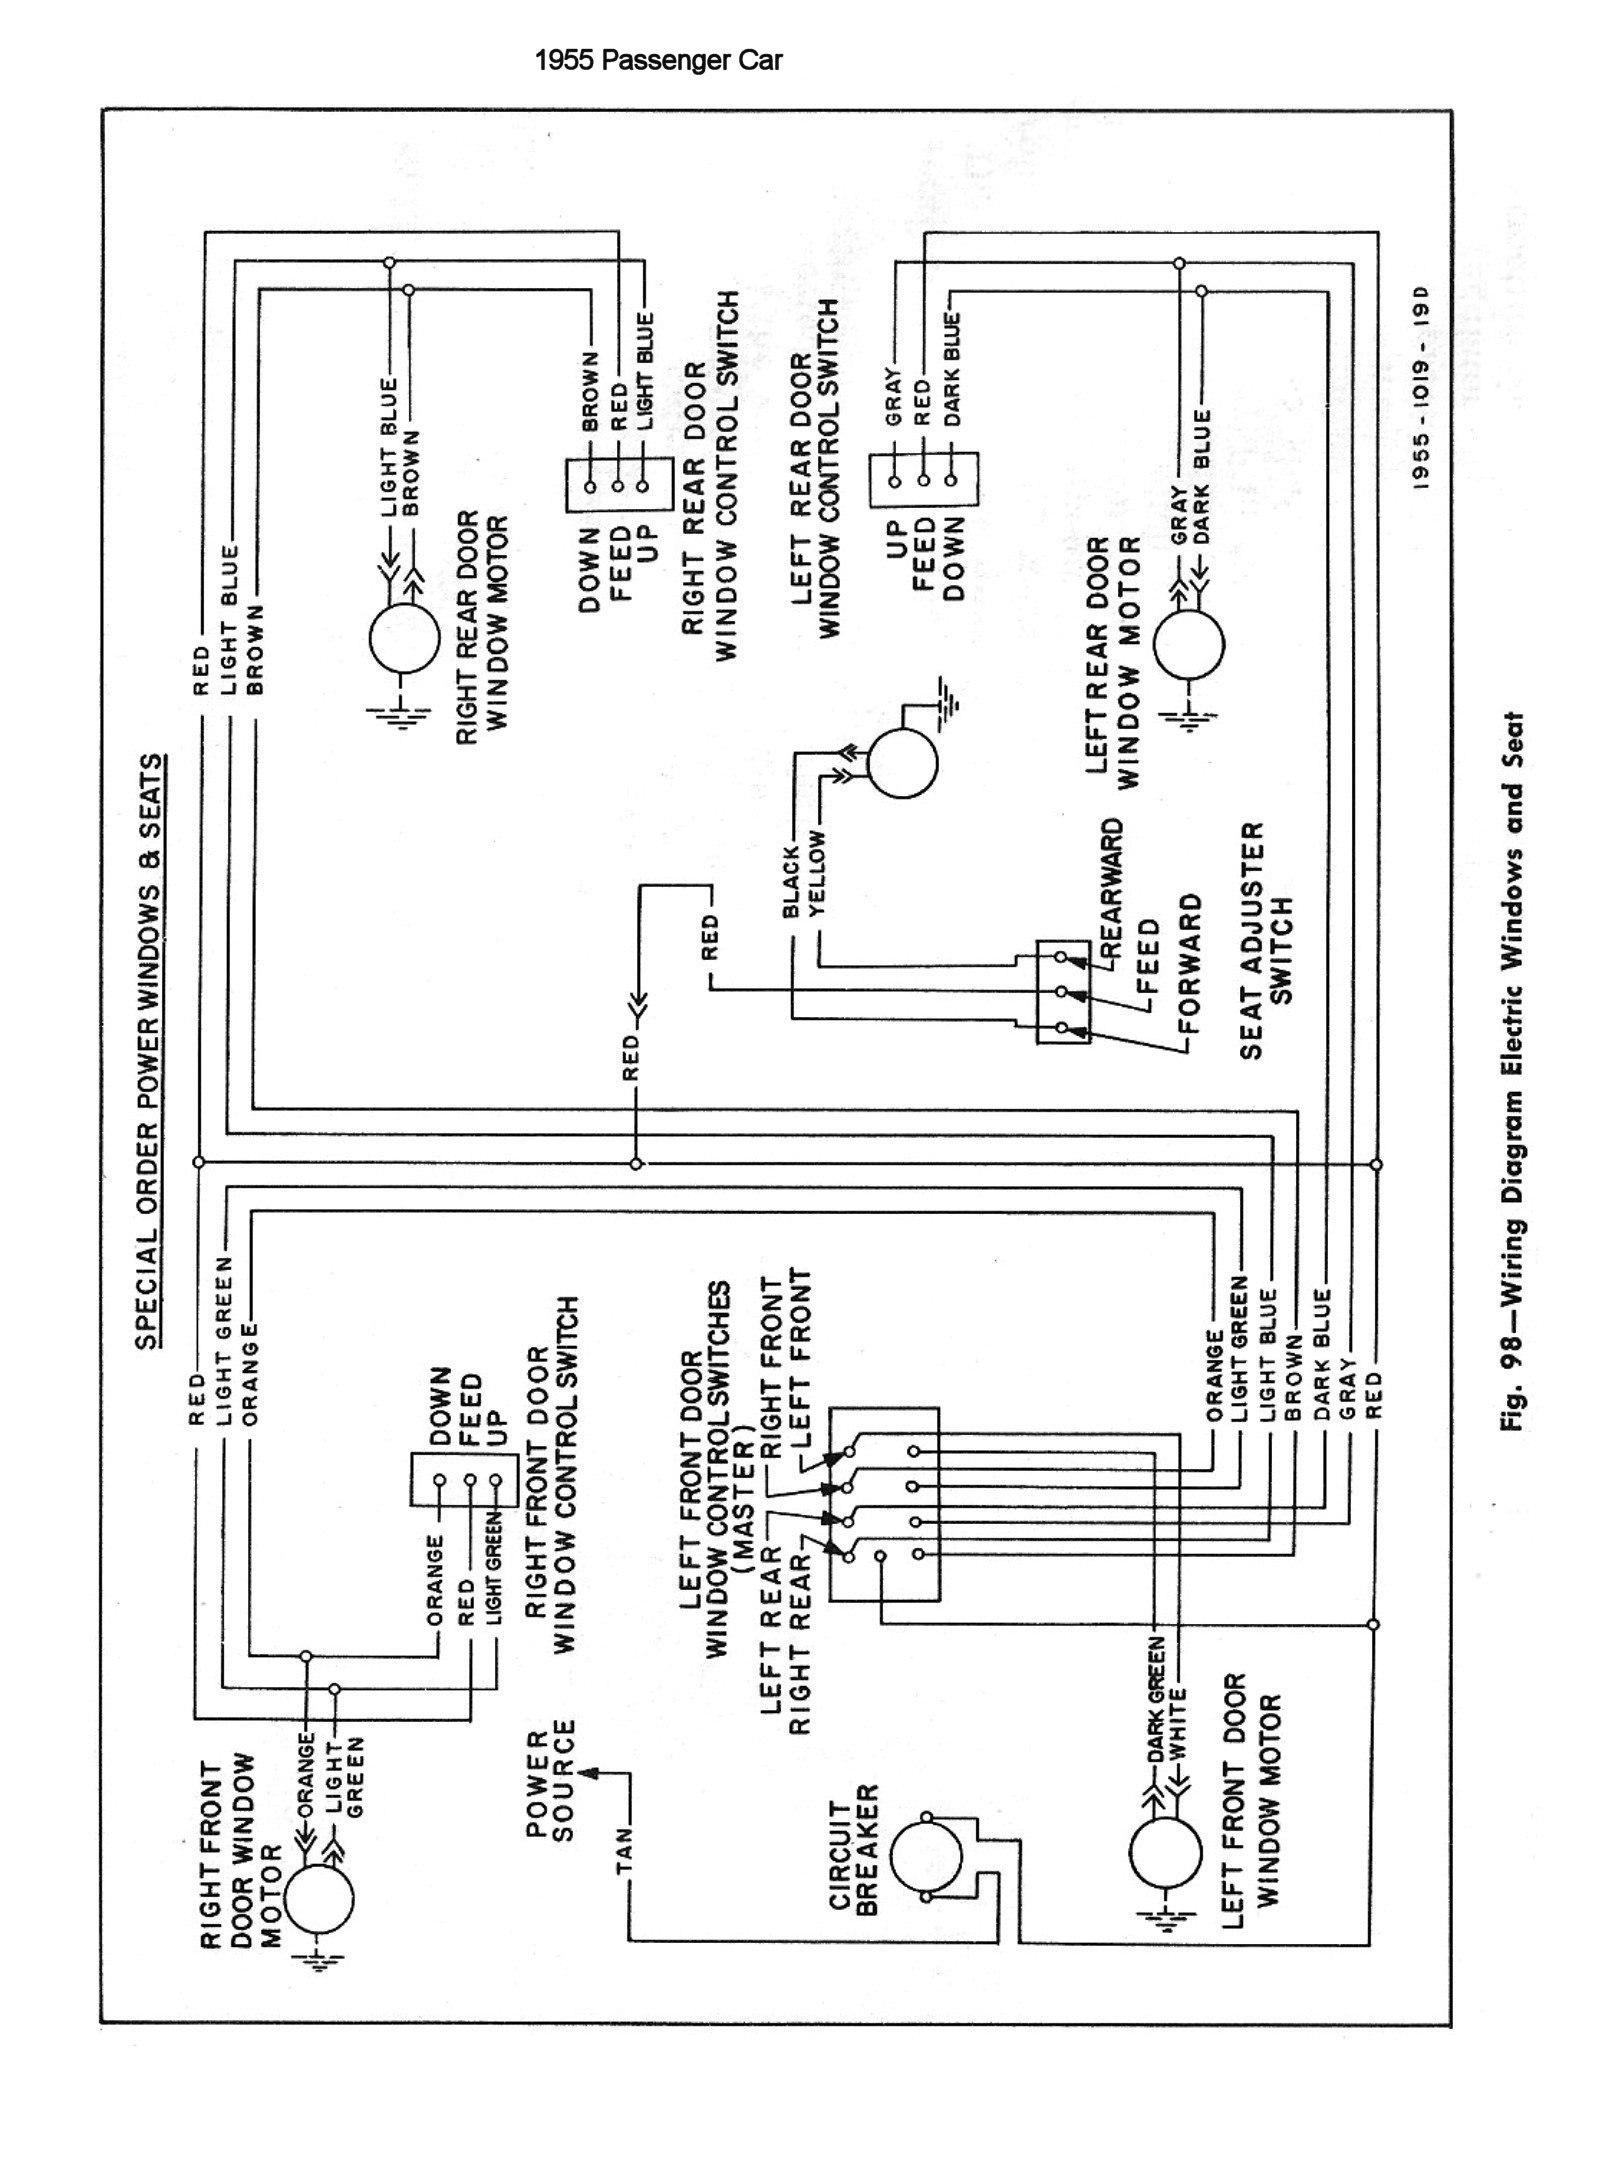 hight resolution of 1955 international pickup wiring diagram wiring diagram bass pickup wiring diagrams 1954 international pickup wiring diagram